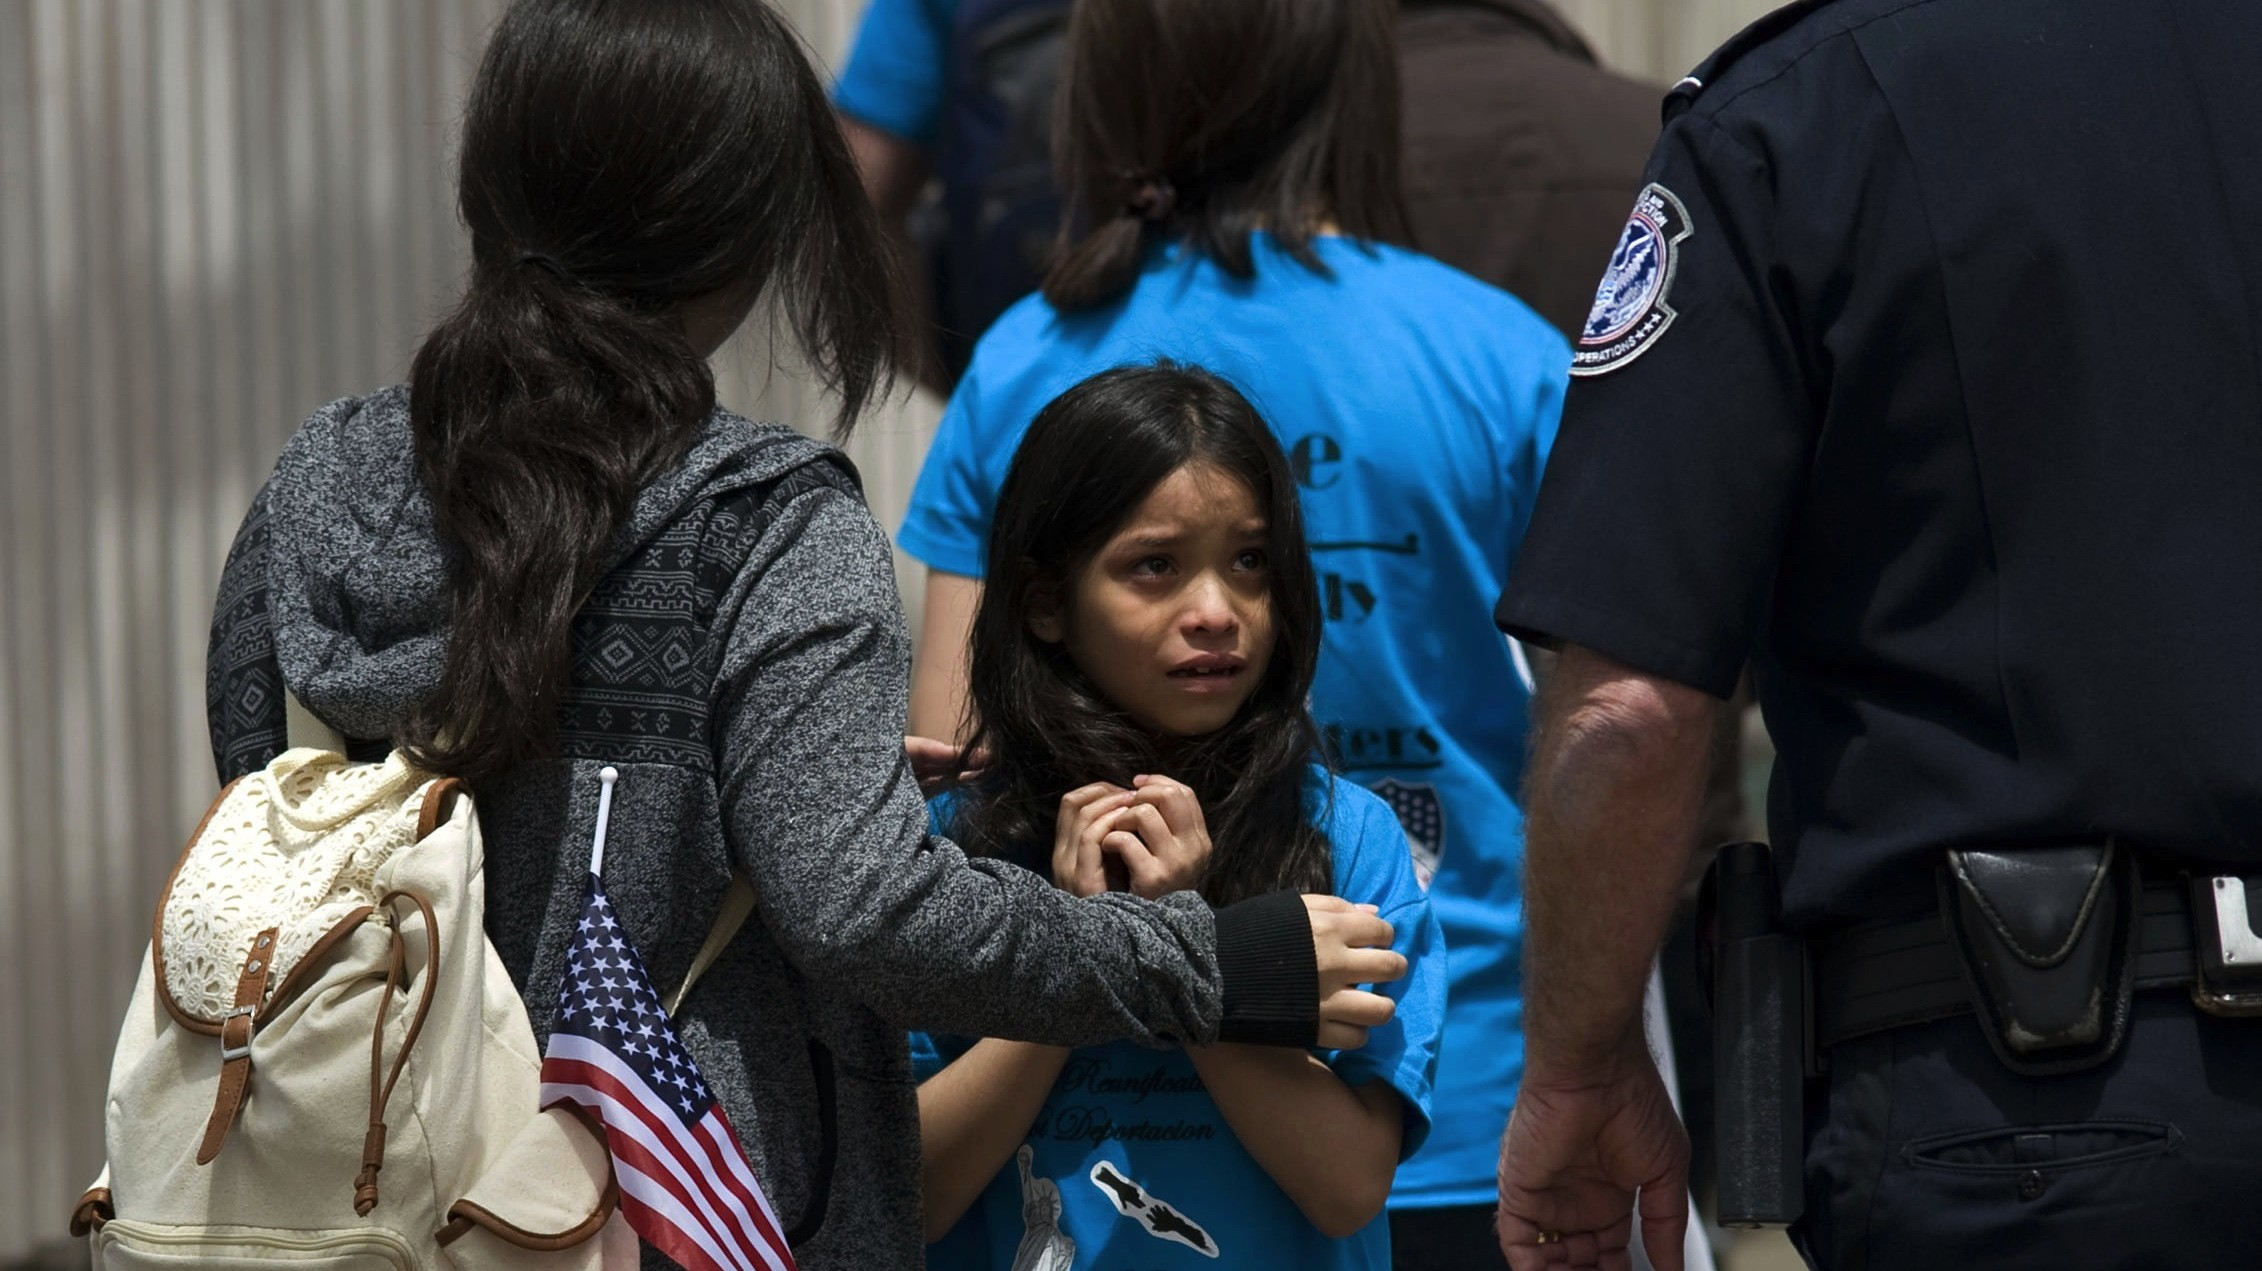 US Admits Some Families It Rounded Up for Deportation Could Qualify for Asylum